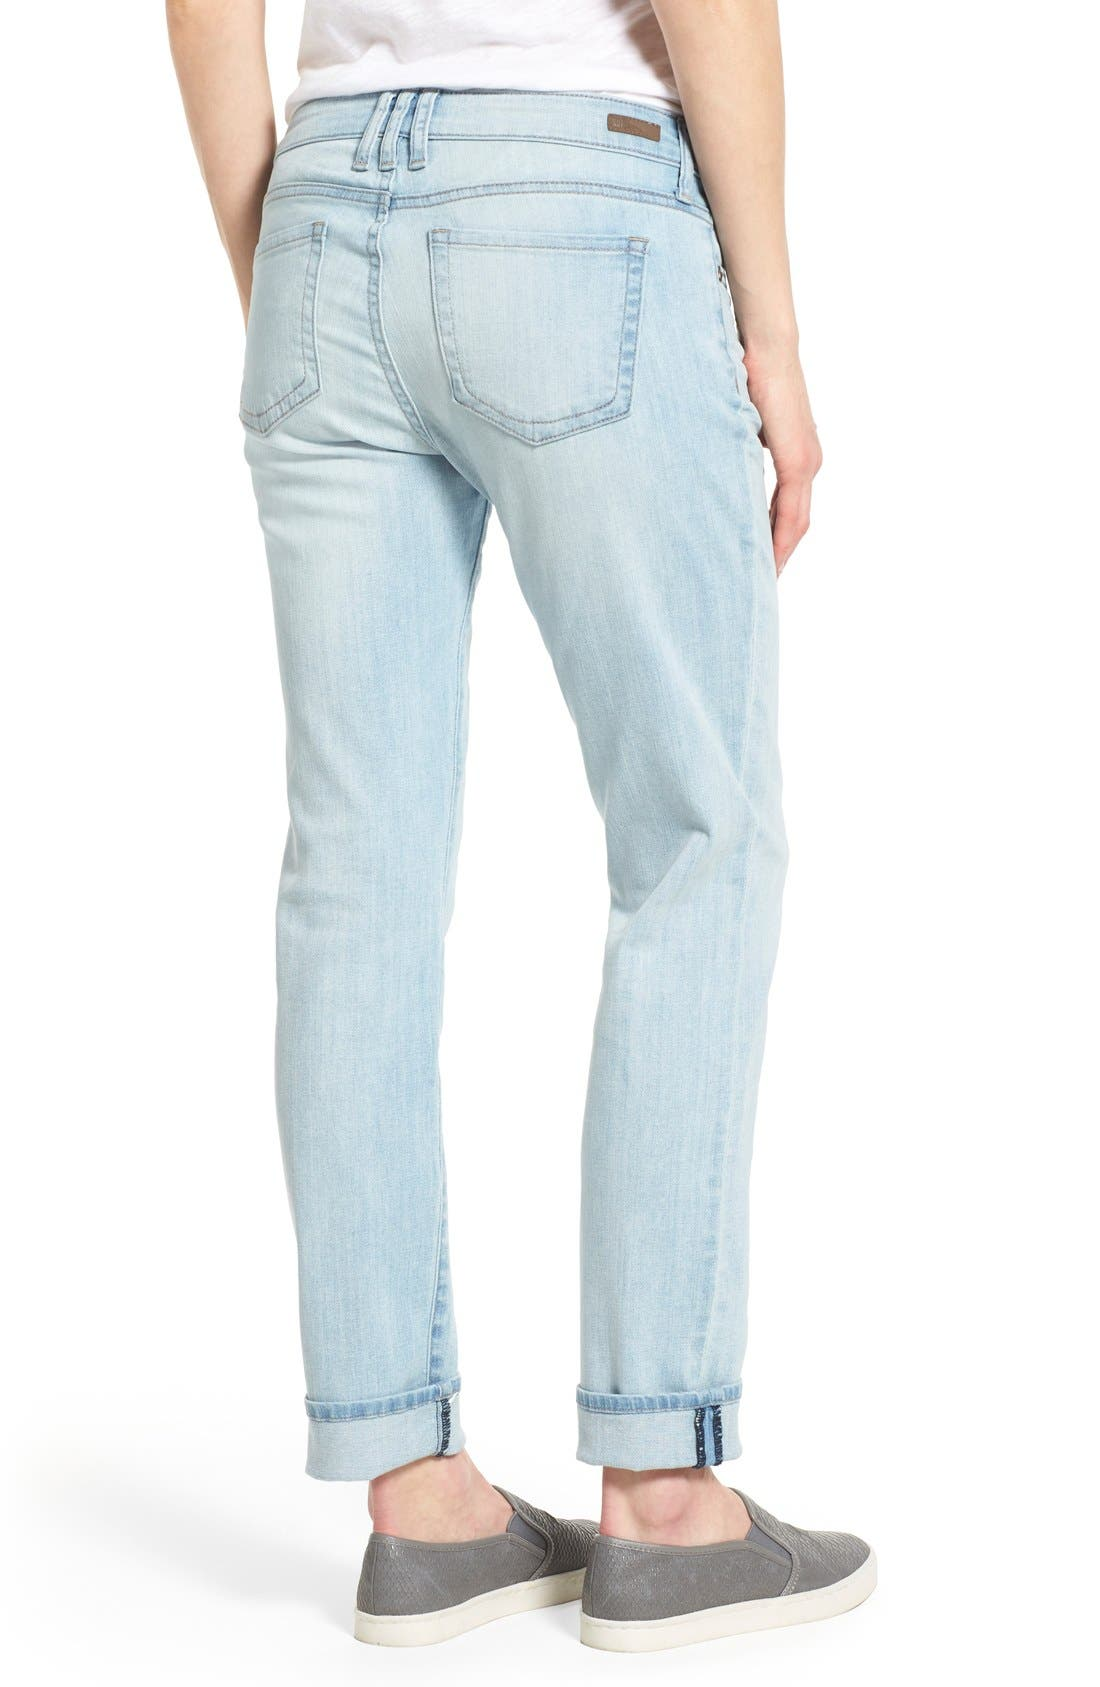 Alternate Image 2  - KUT from the Kloth 'Catherine' Stretch Slim Boyfriend Jeans (Artistic)